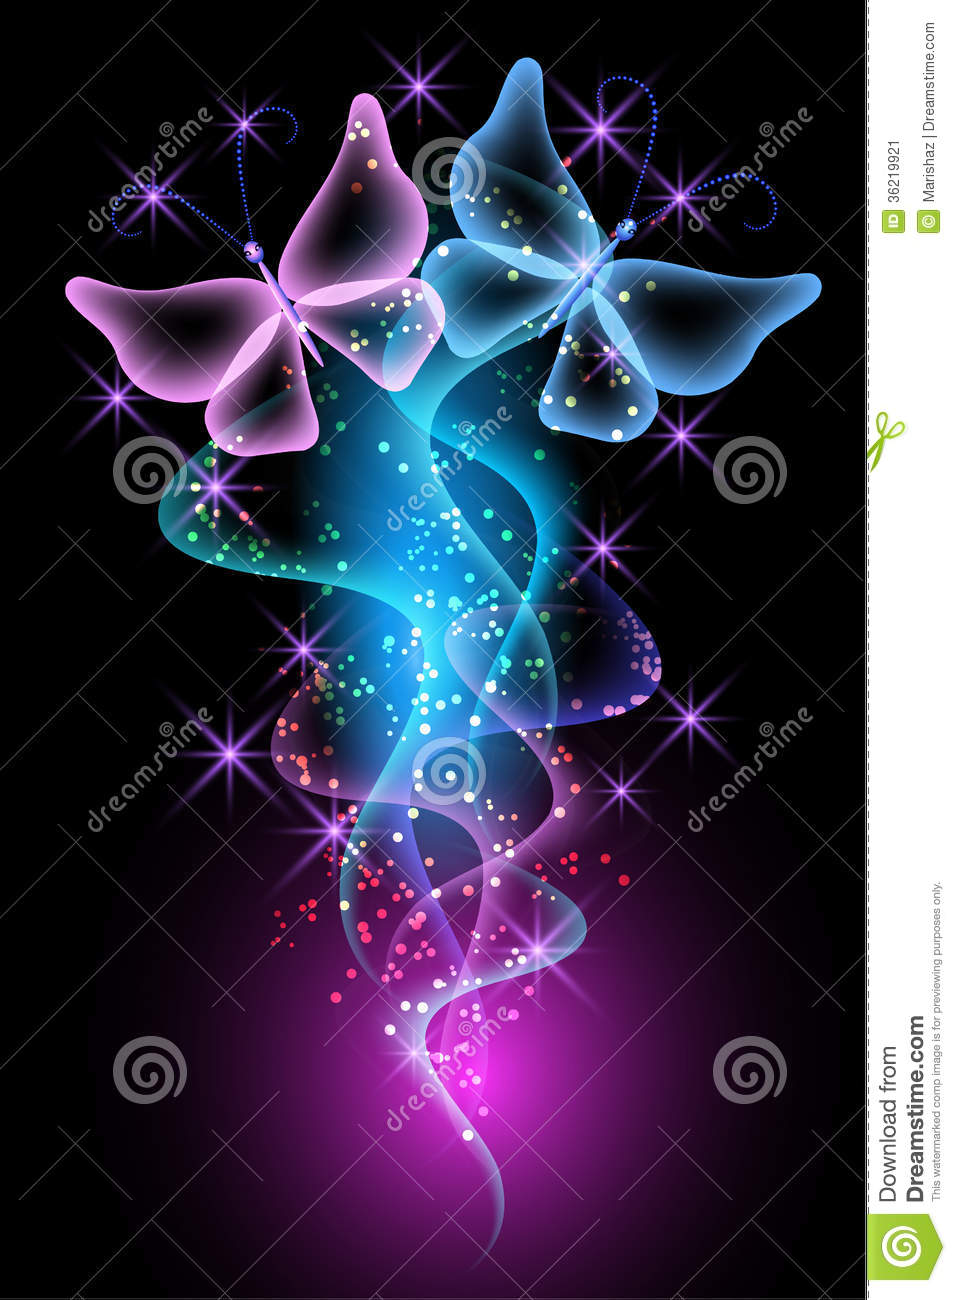 Dynamic Iphone X Wallpaper Magic Transparent Butterfly Stock Vector Illustration Of